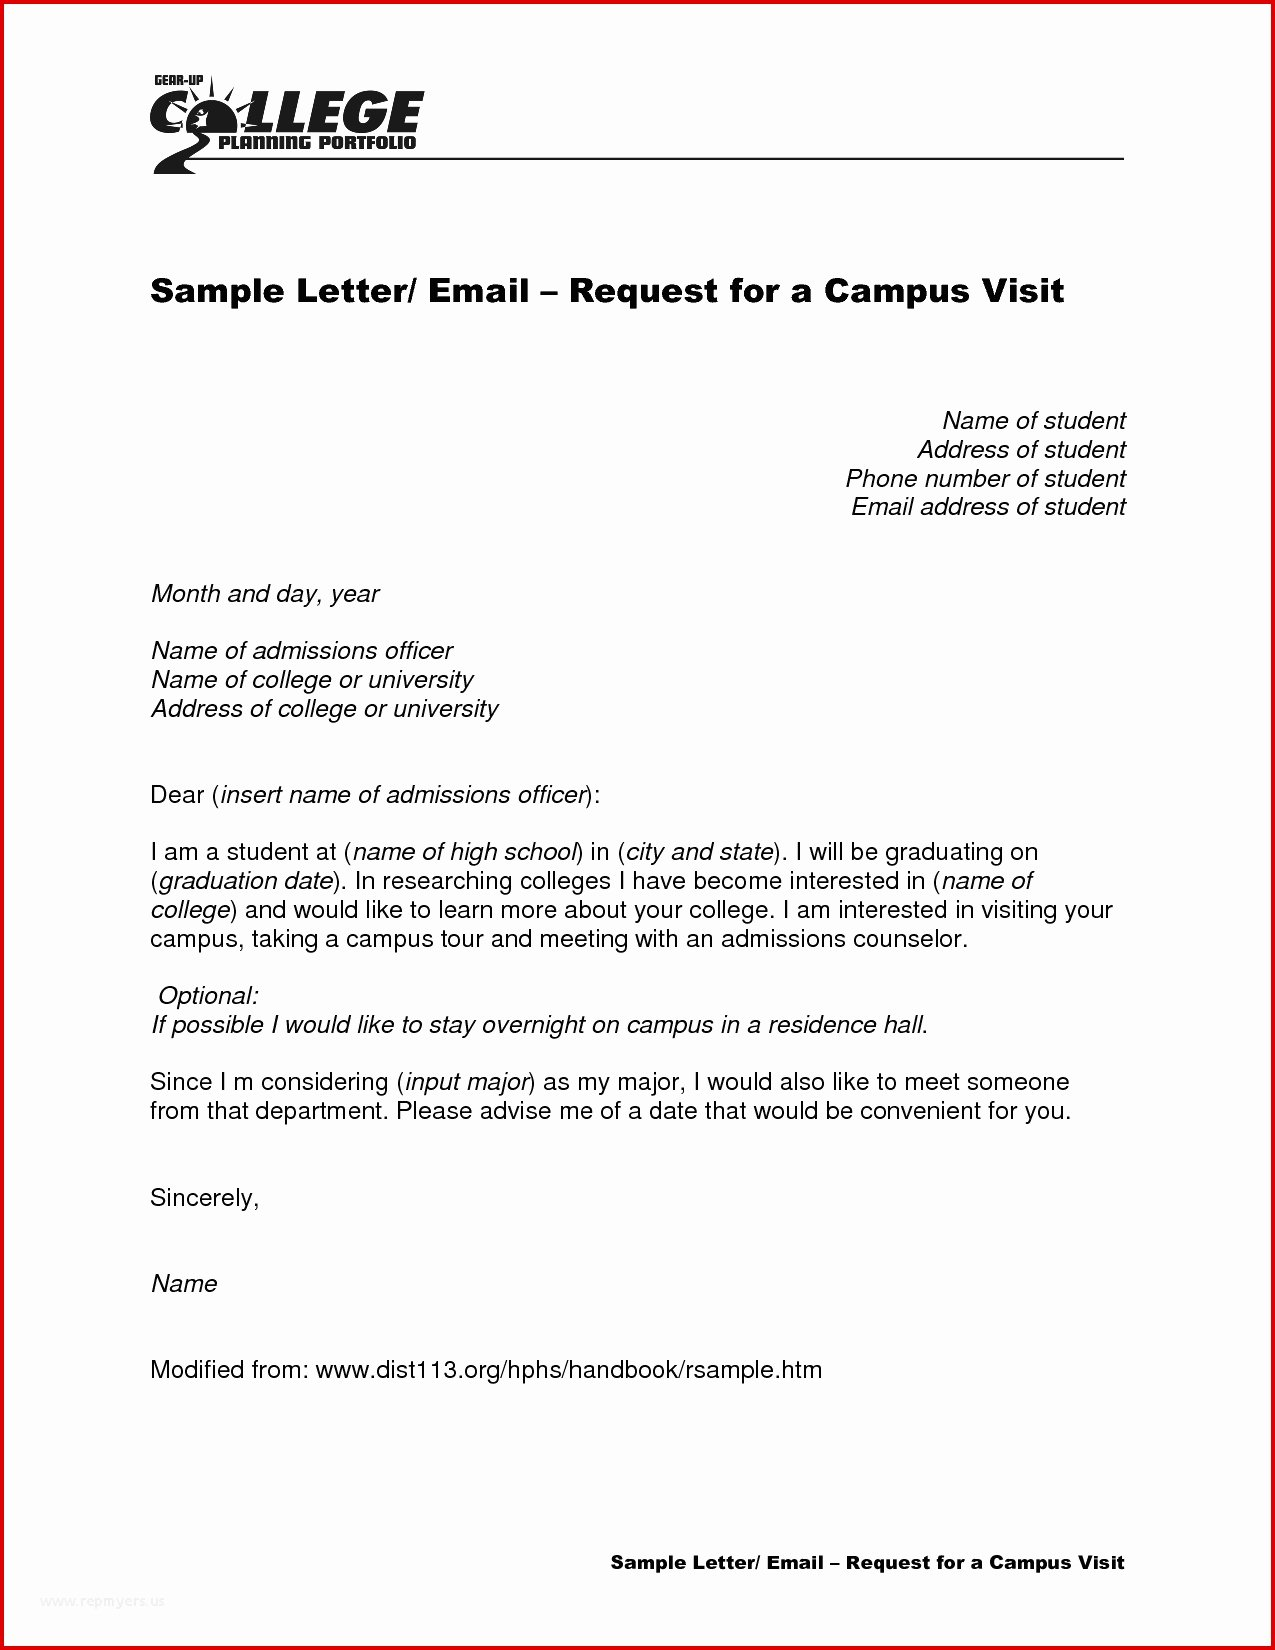 National Interest Waiver Recommendation Letter Lovely 63 Superfine Petition Letter format